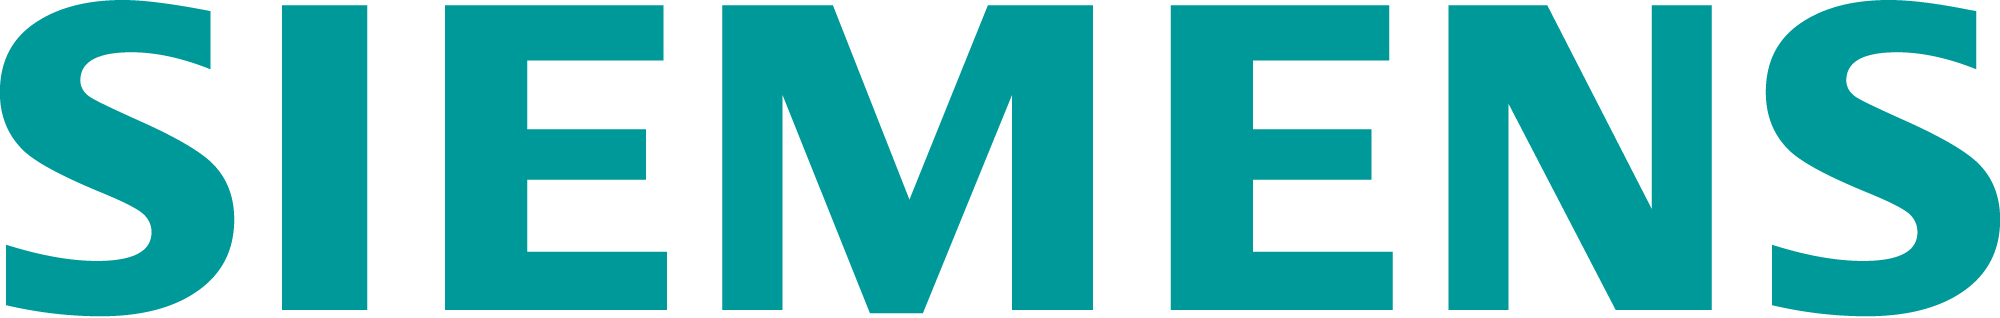 Siemens Corporation's logo